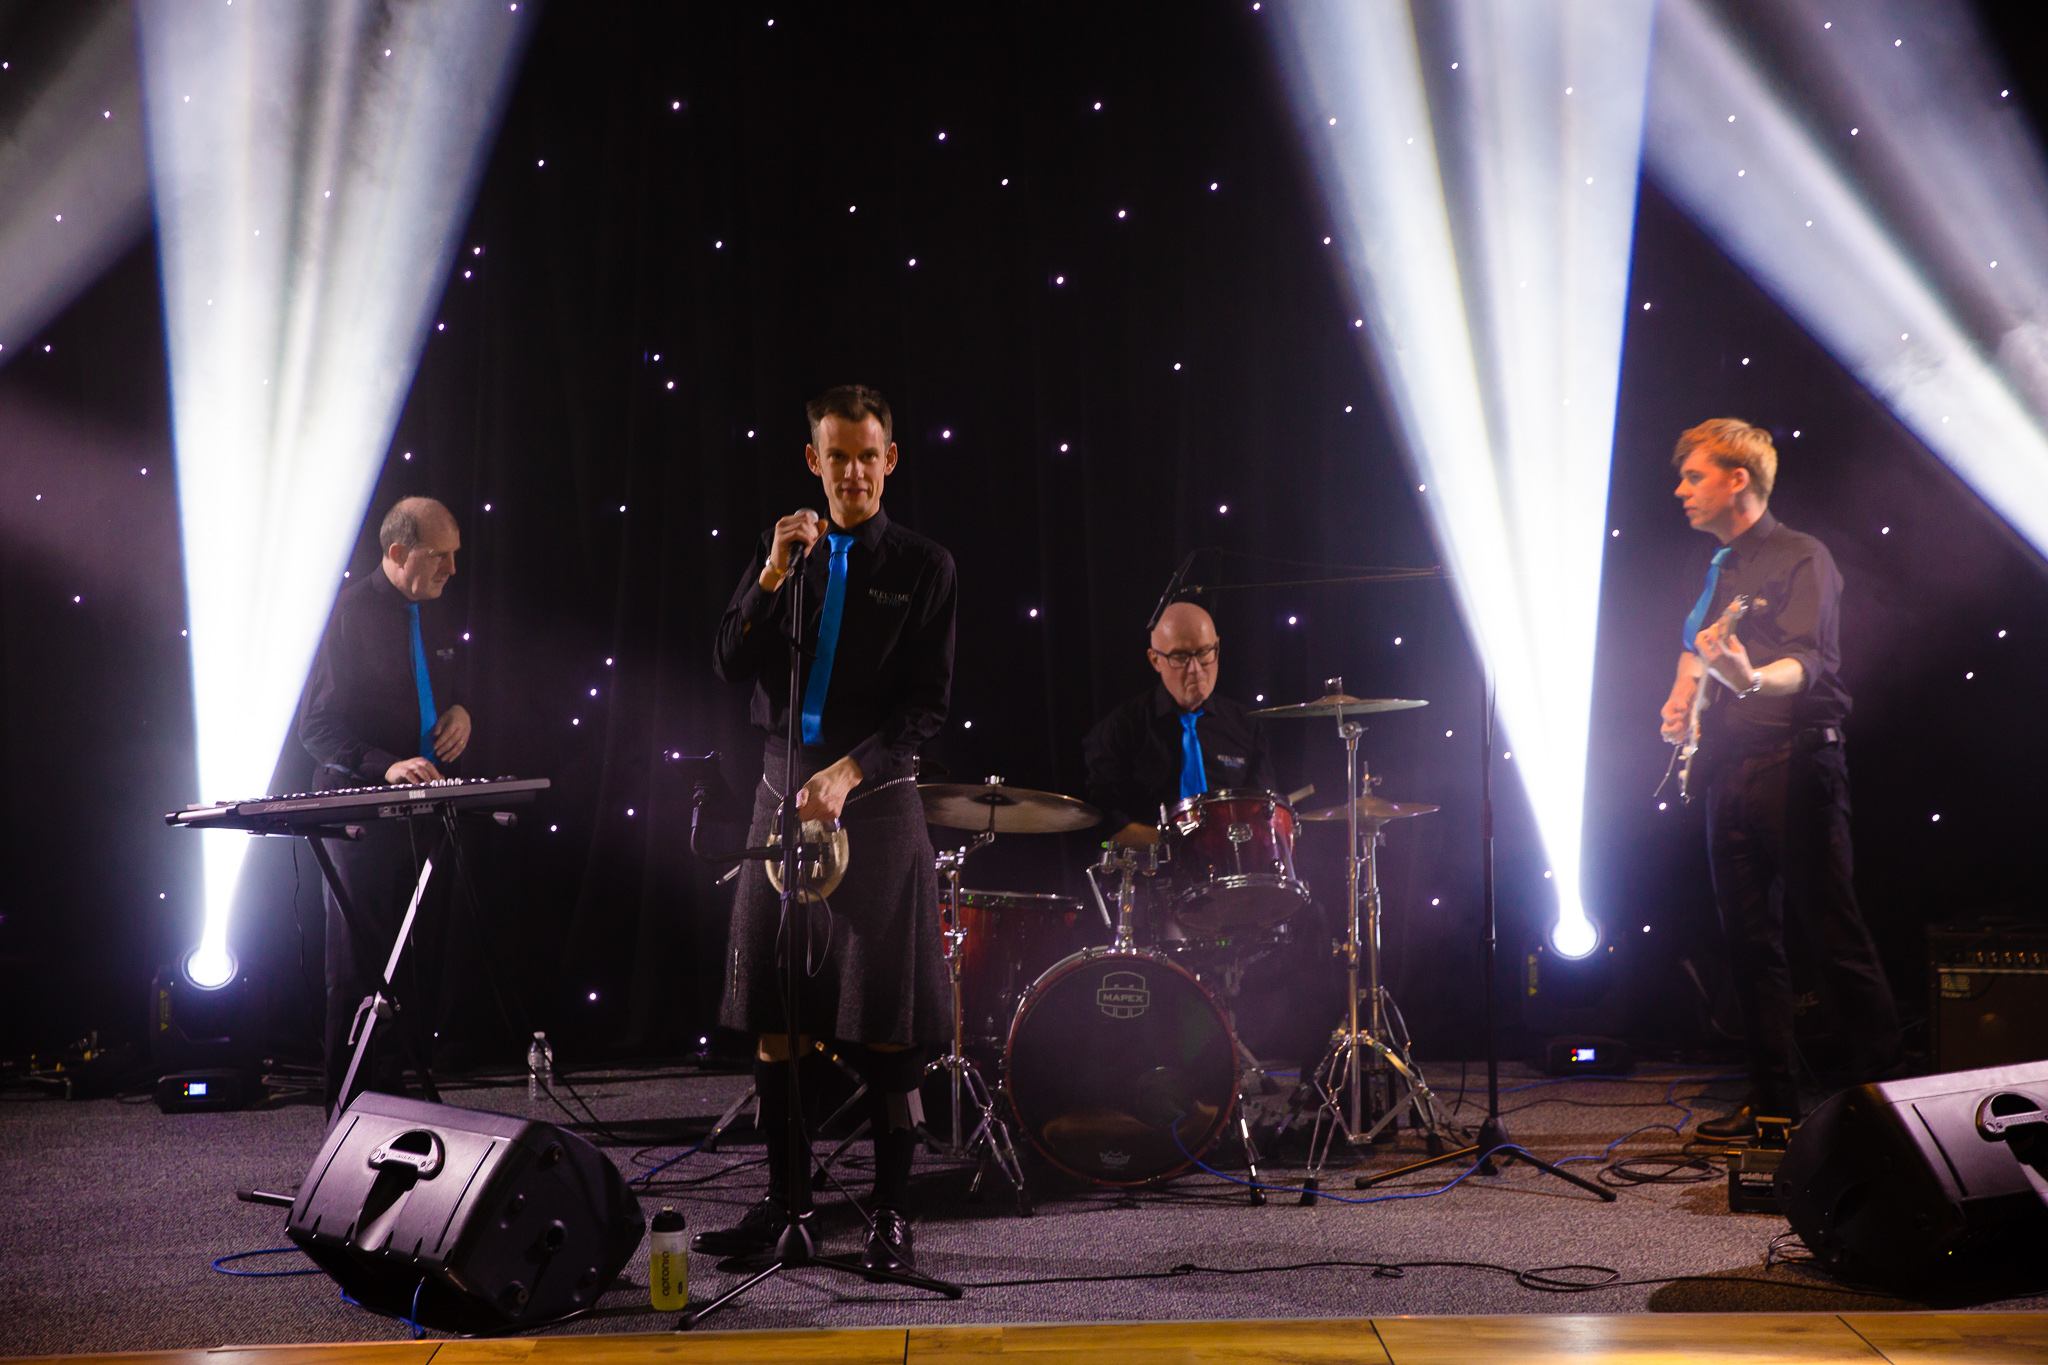 Scottish Spectacular The Reel Time Band at EICC for Herbalife